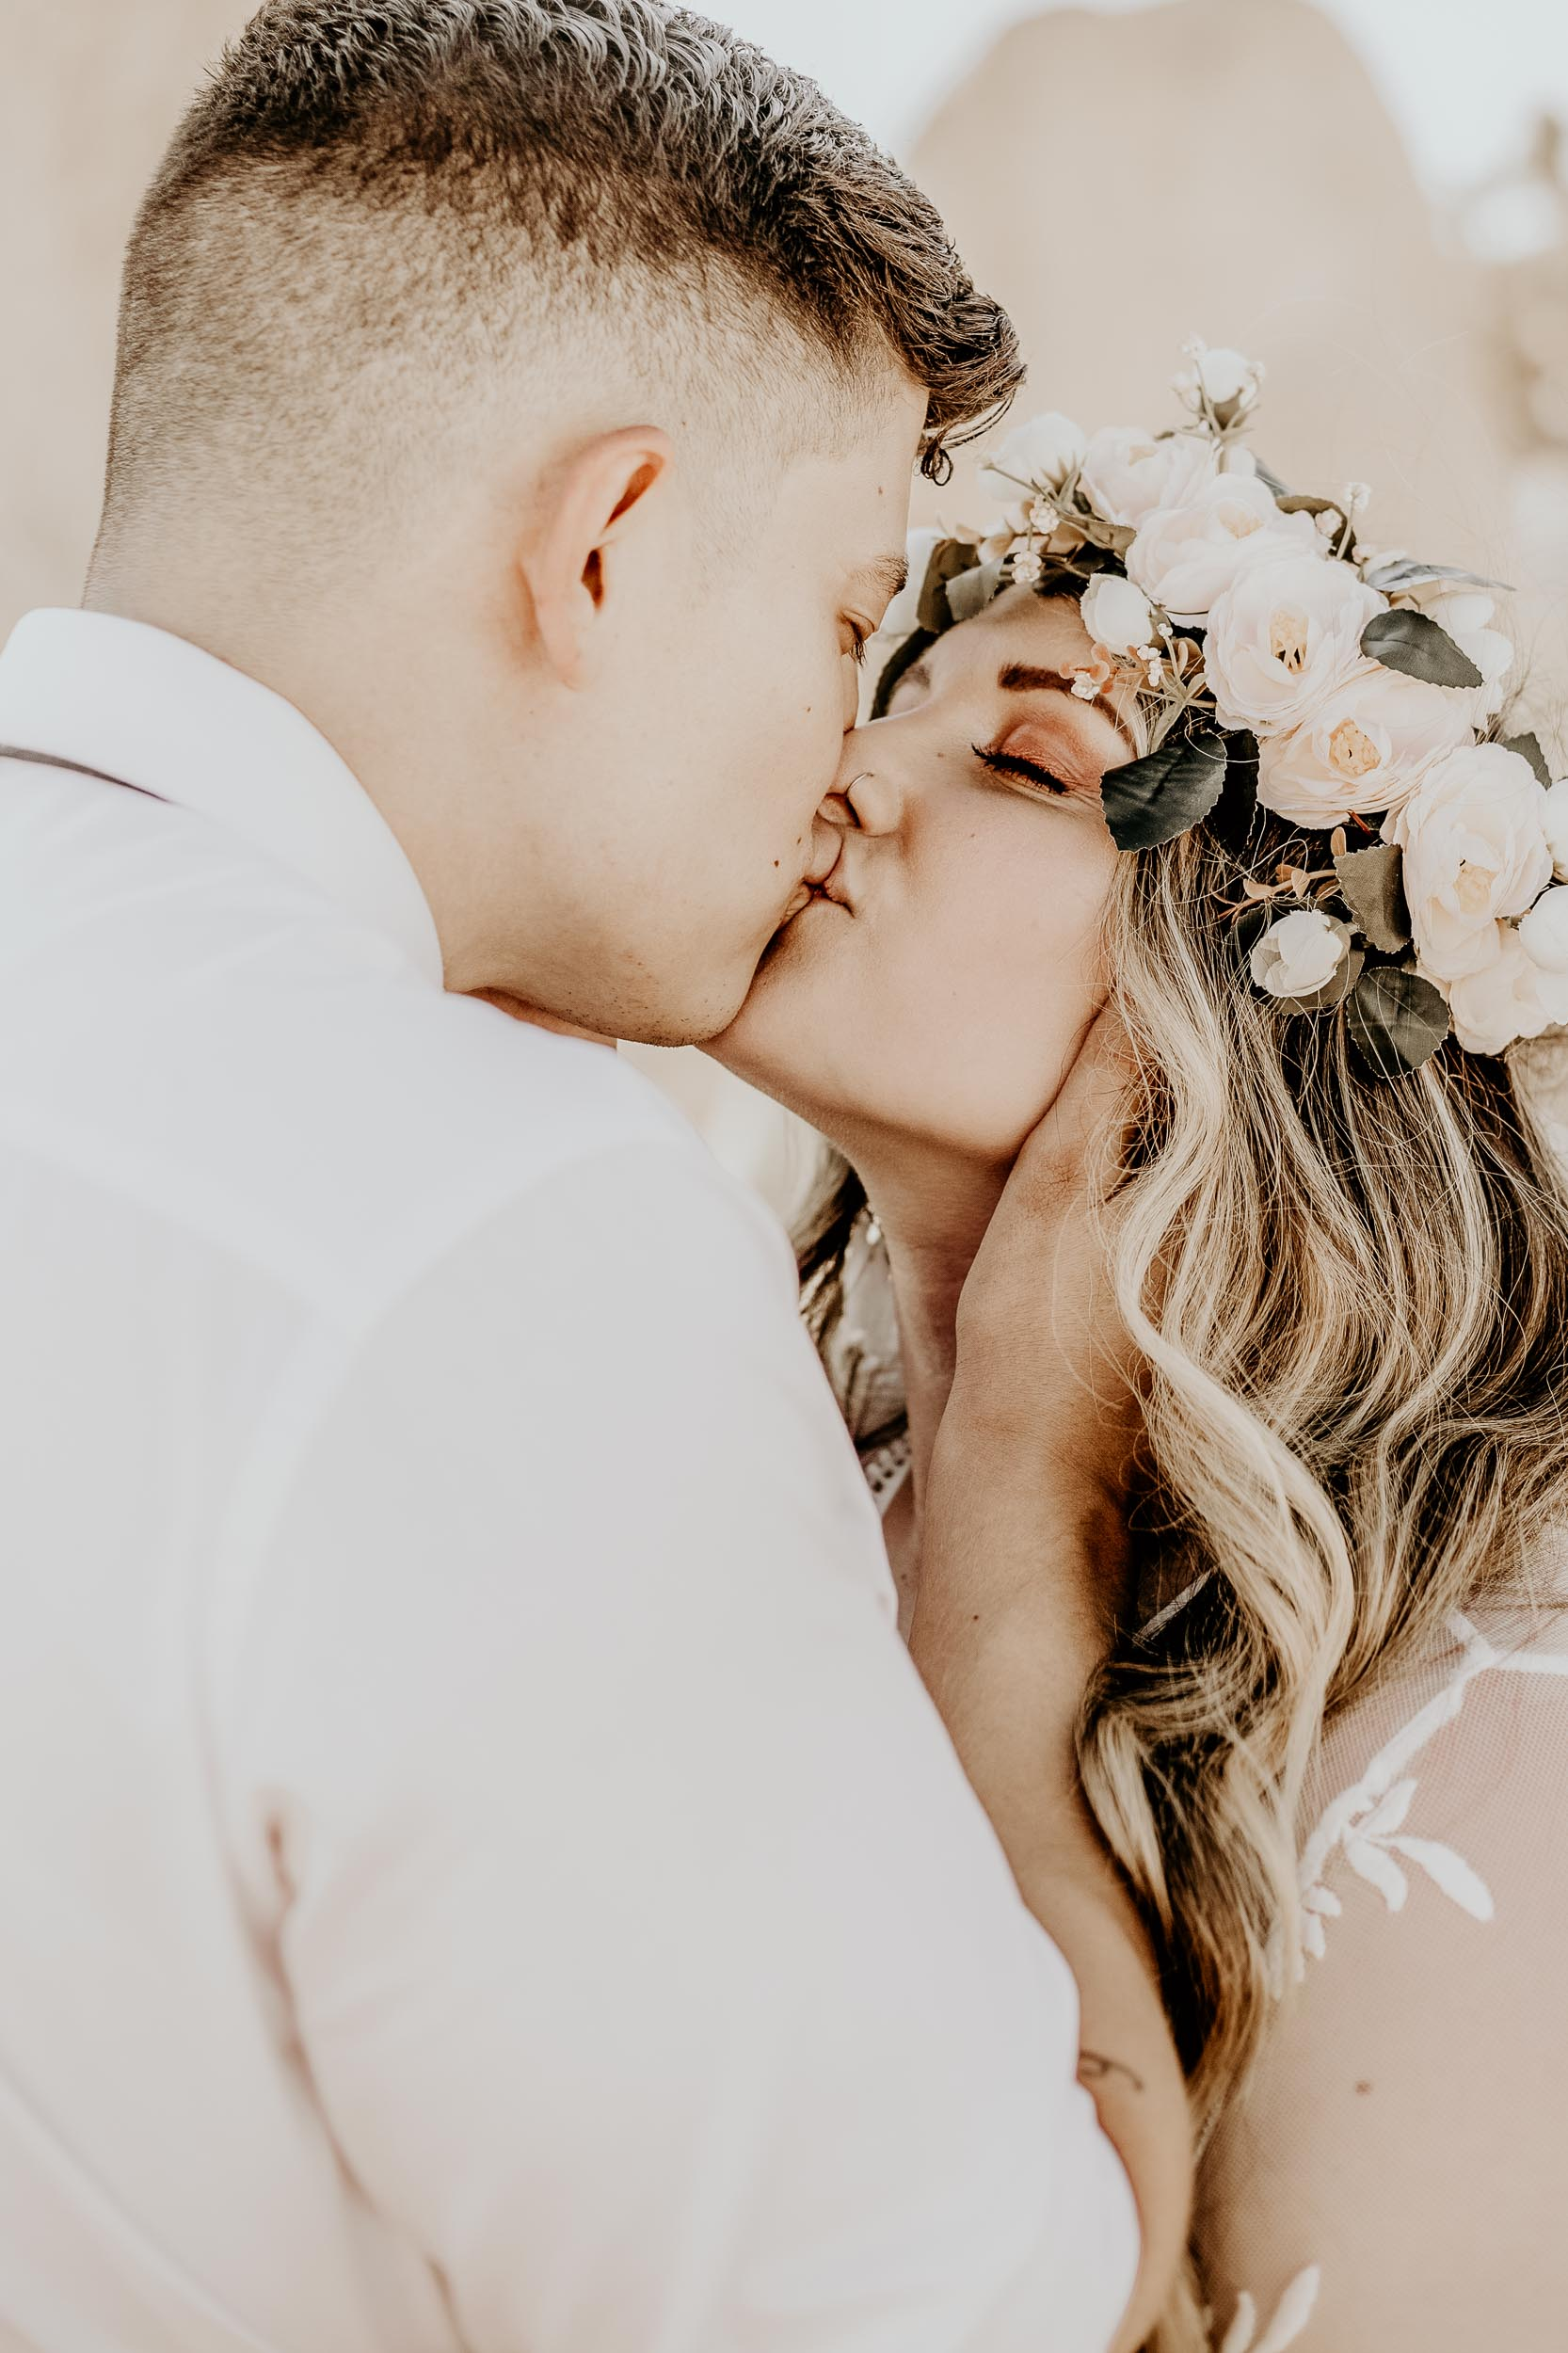 Say Hey - NOW BOOKING 2019 + 2020 INTIMATE WEDDINGS + ELOPEMENTS